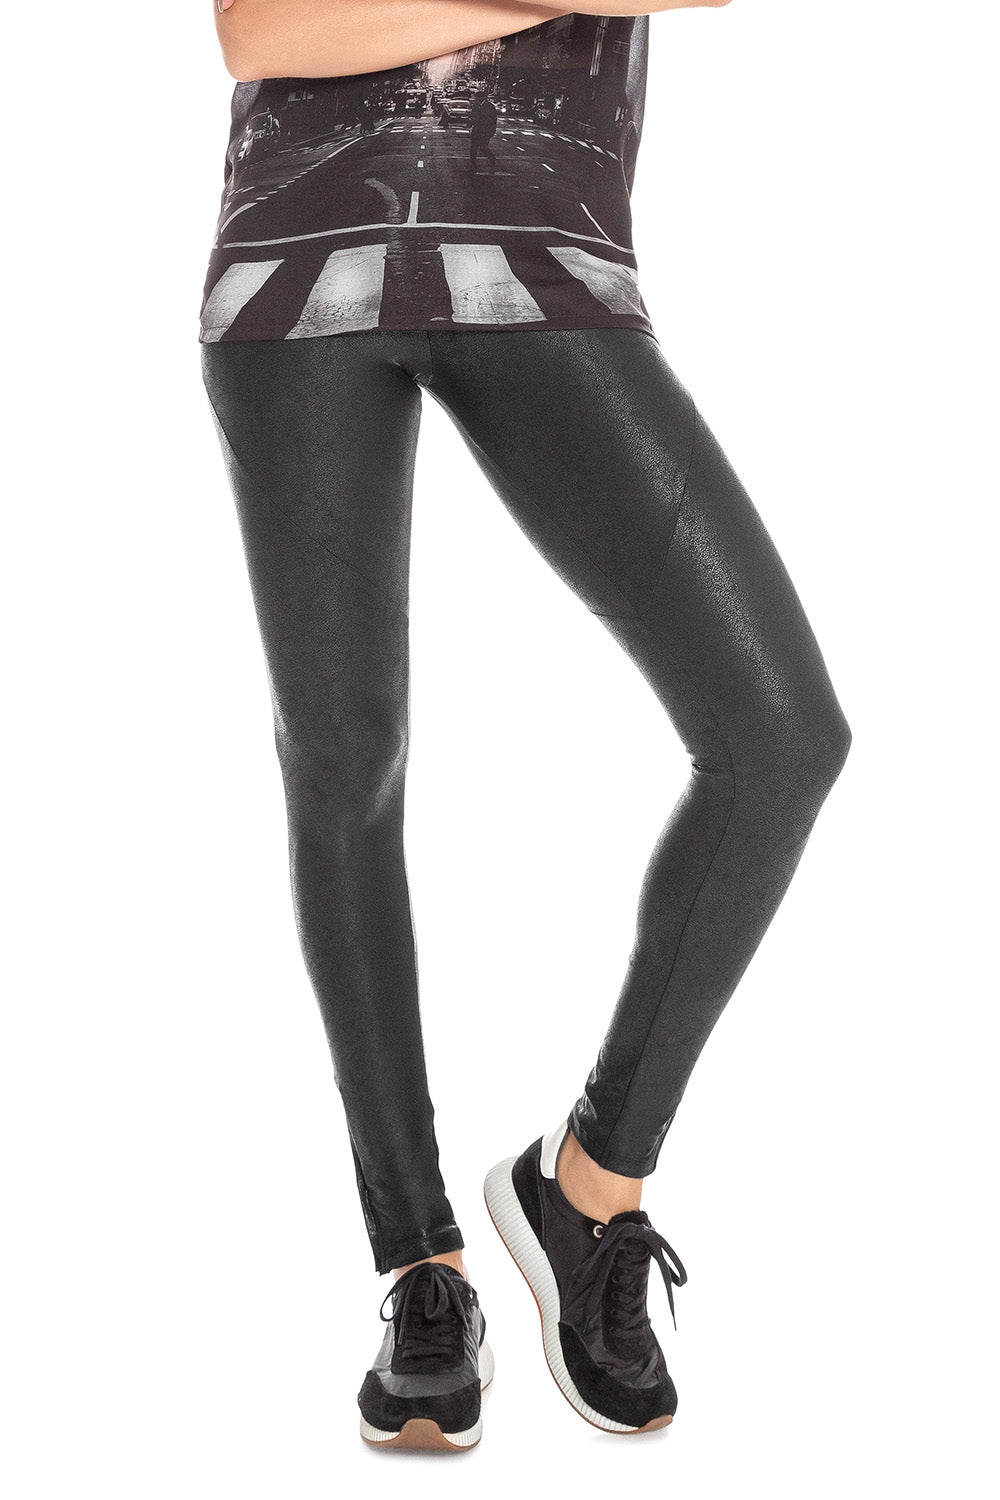 Urban Motion Tight